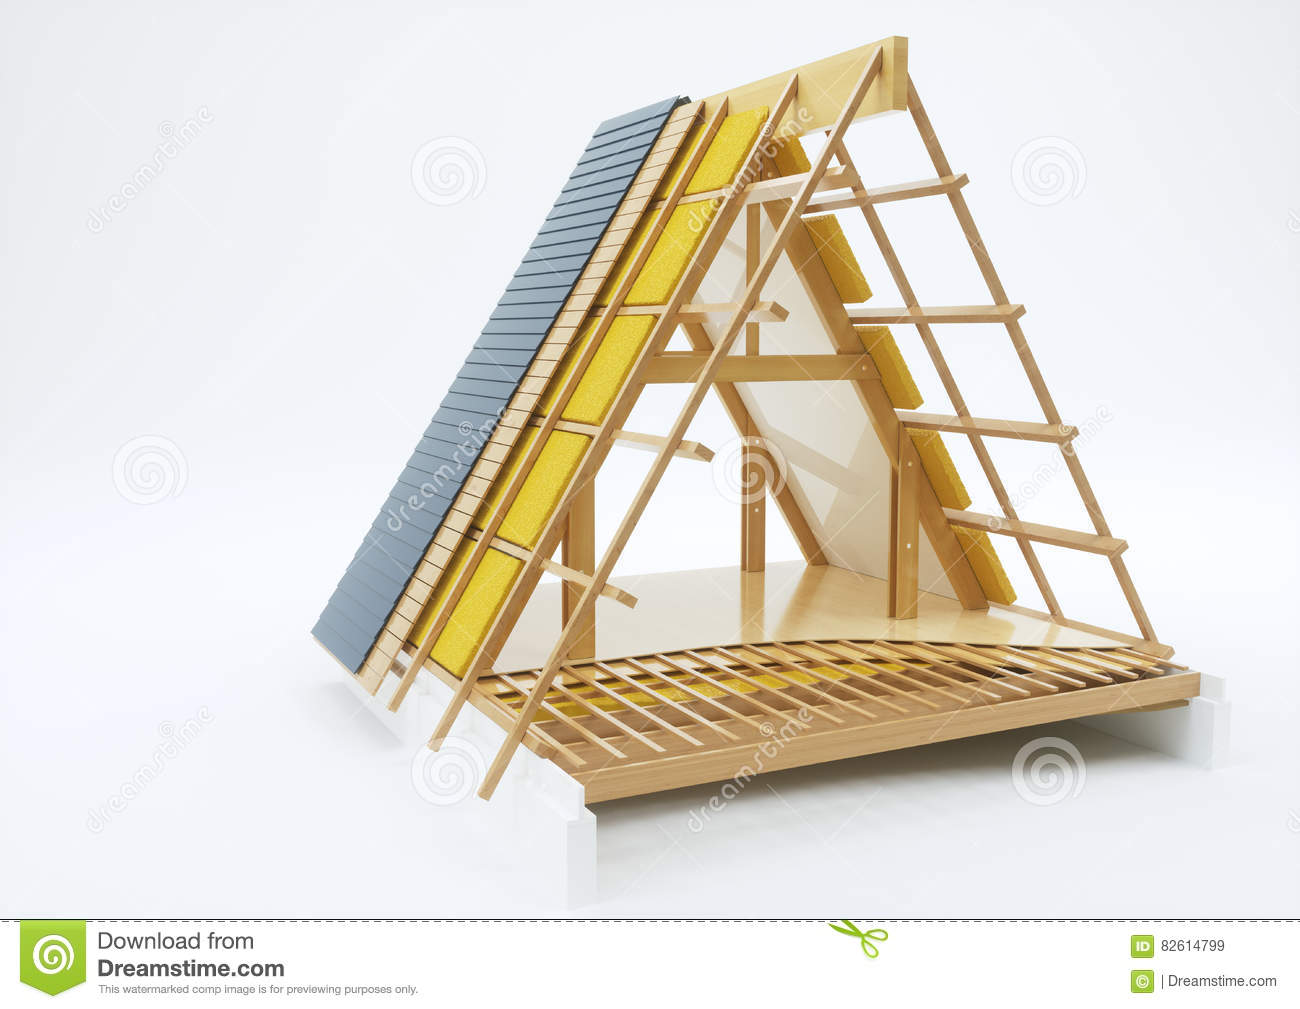 Roof Construction With Technical Details 3d Rendering